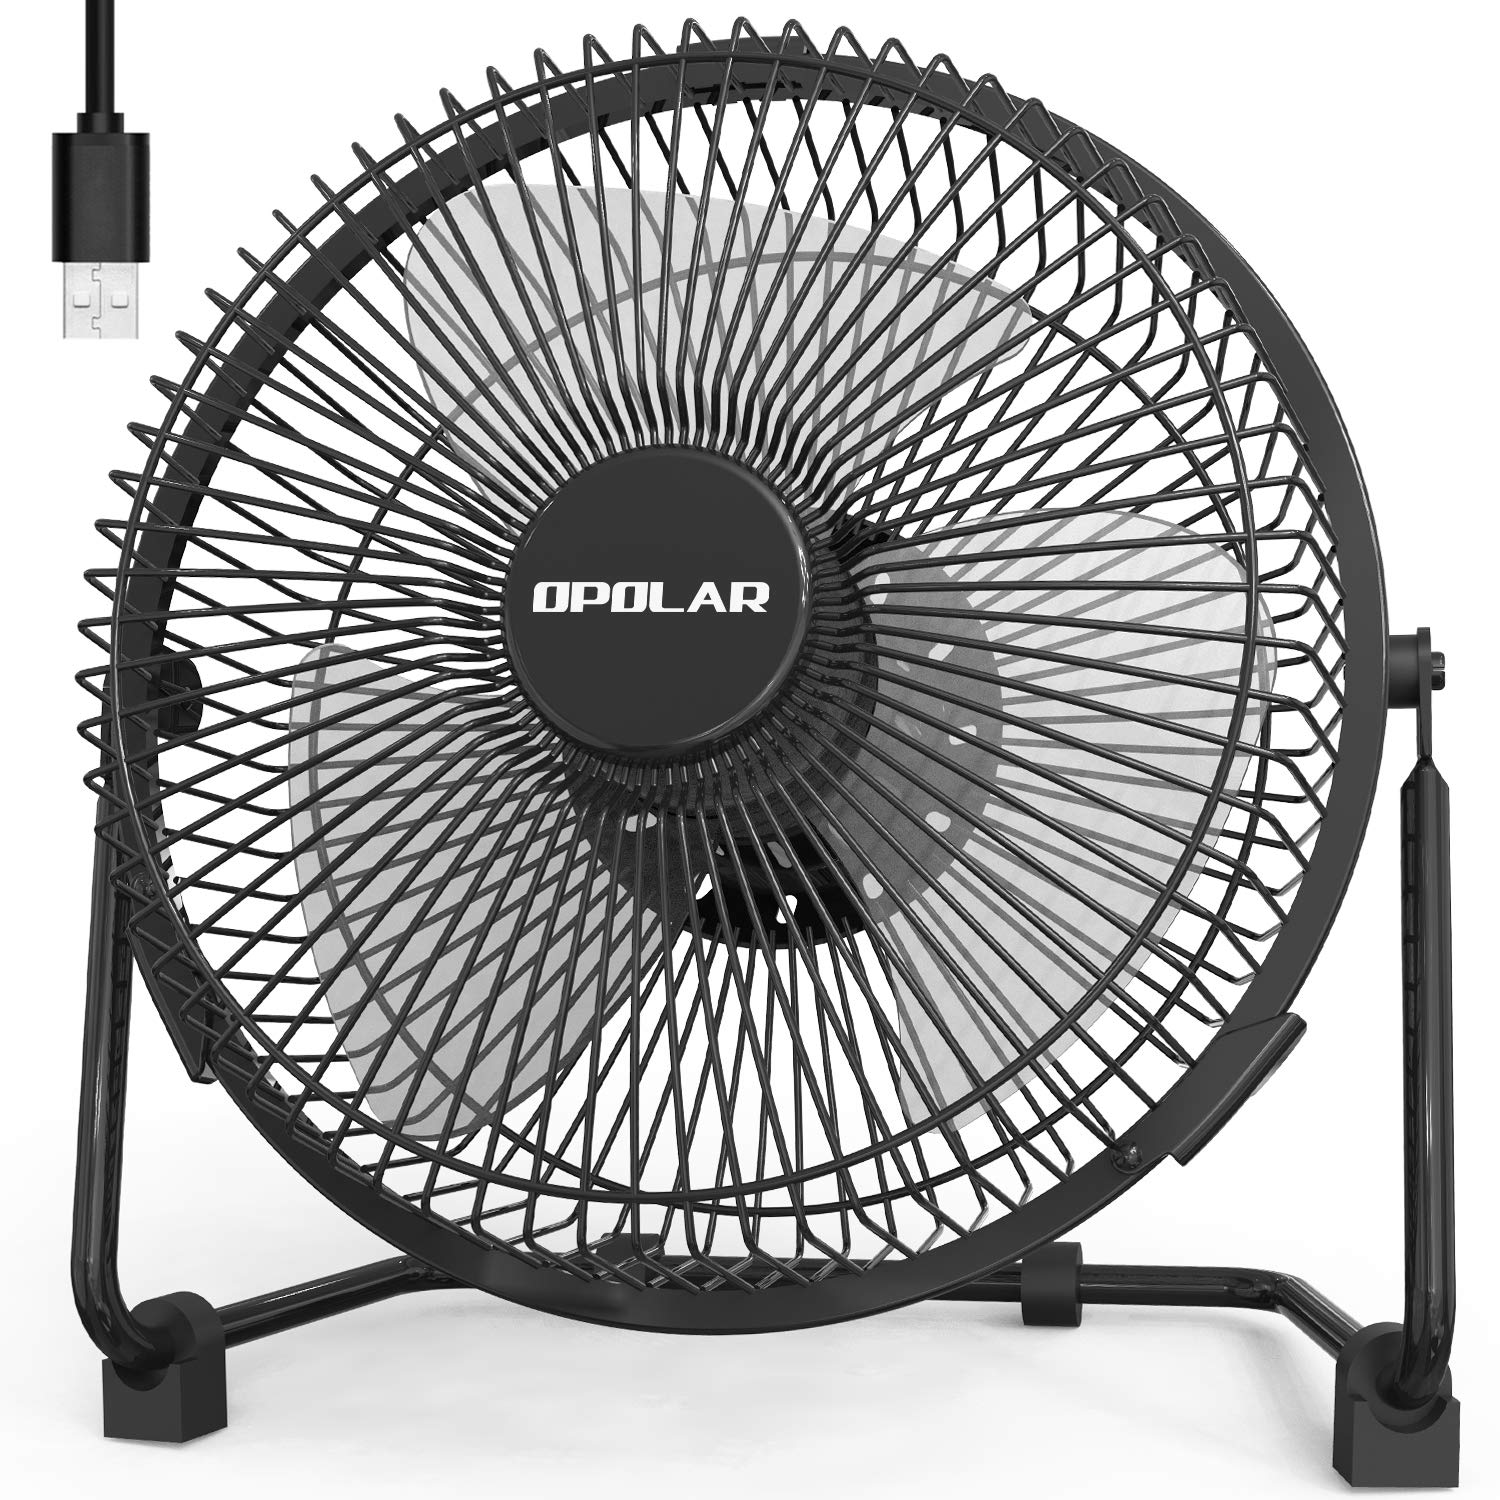 OPOLAR USB Powered Desk Fan with USB Plug, 9 Inch Quiet Portable Fan with Enhanced Airflow, 2 Speeds,Perfect Personal Cooling Fan for Home Office Table by OPOLAR